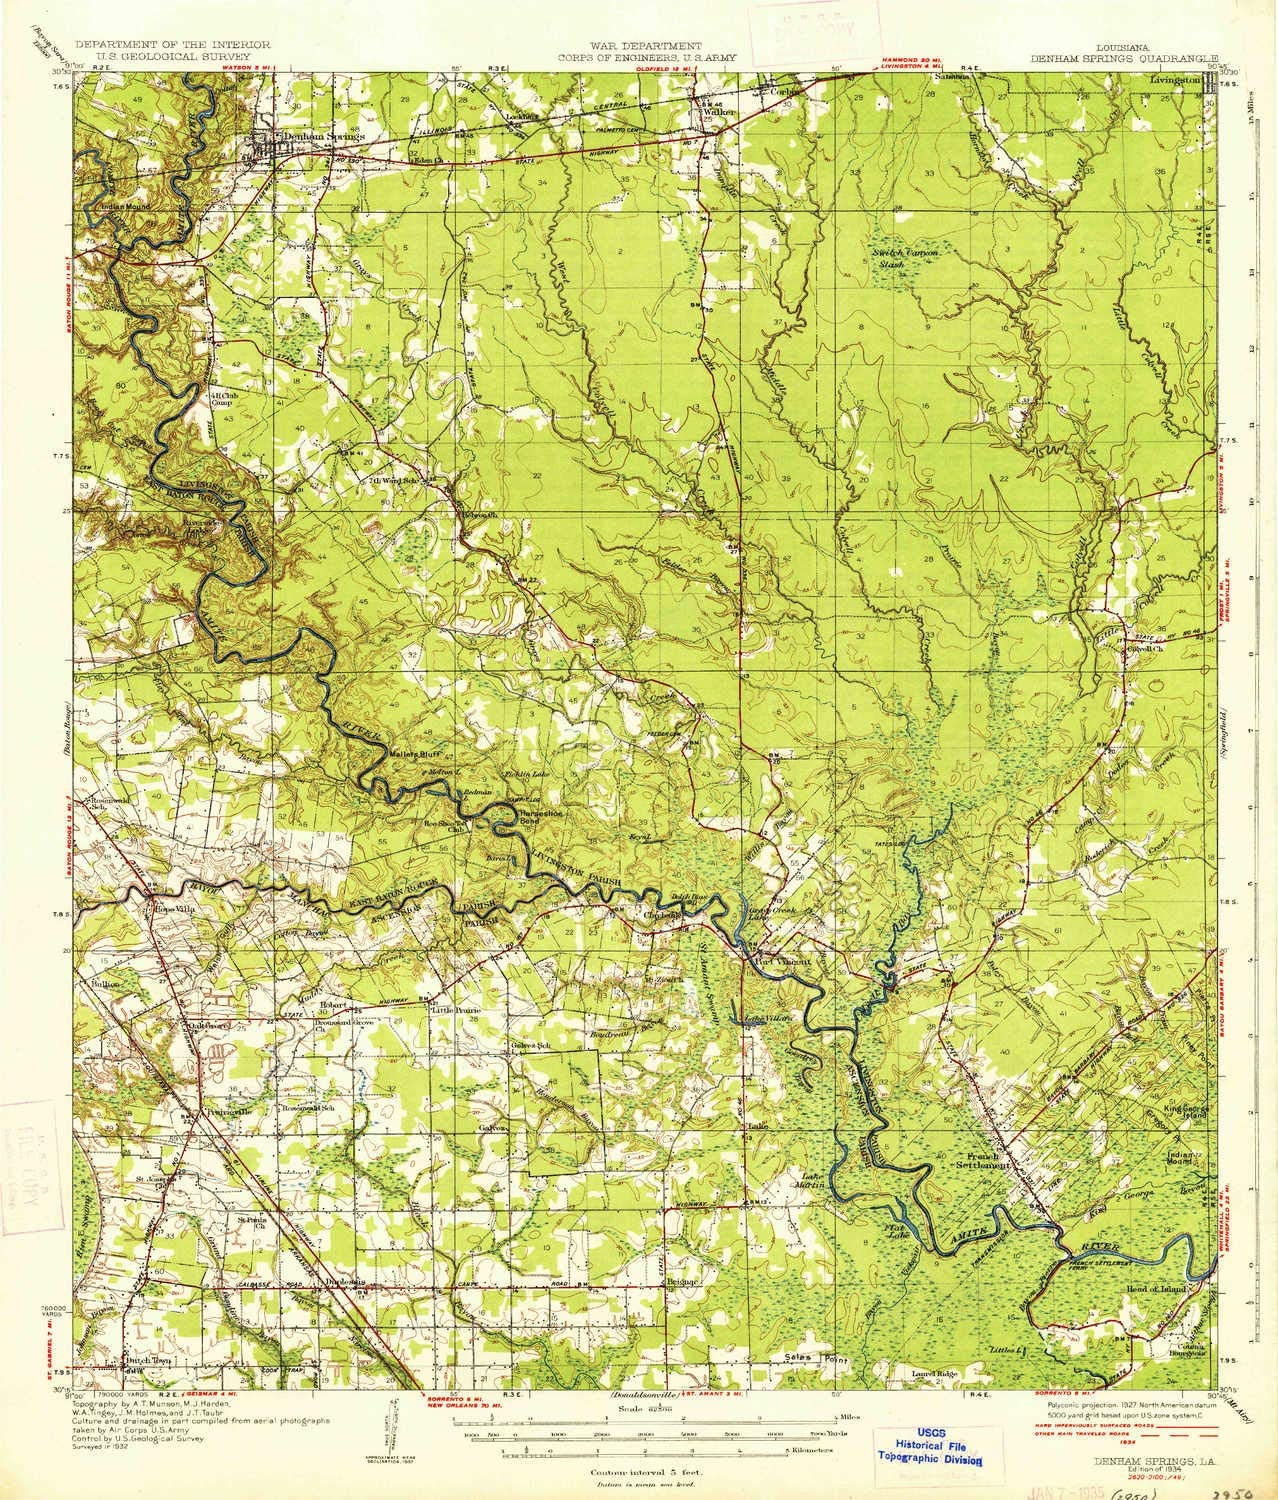 Amazon.com : YellowMaps Denham Springs LA topo map, 1:62500 ... on head of island la map, slidell la map, scott la map, de ridder la map, st. martinville la map, camp beauregard la map, west feliciana parish la map, franklinton la map, saint francisville la map, saint amant la map, metairie la map, florida la map, algiers la map, lafayette la map, farmerville la map, lake pontchartrain la map, st. francisville la map, tickfaw la map, washington la map, napoleonville la map,